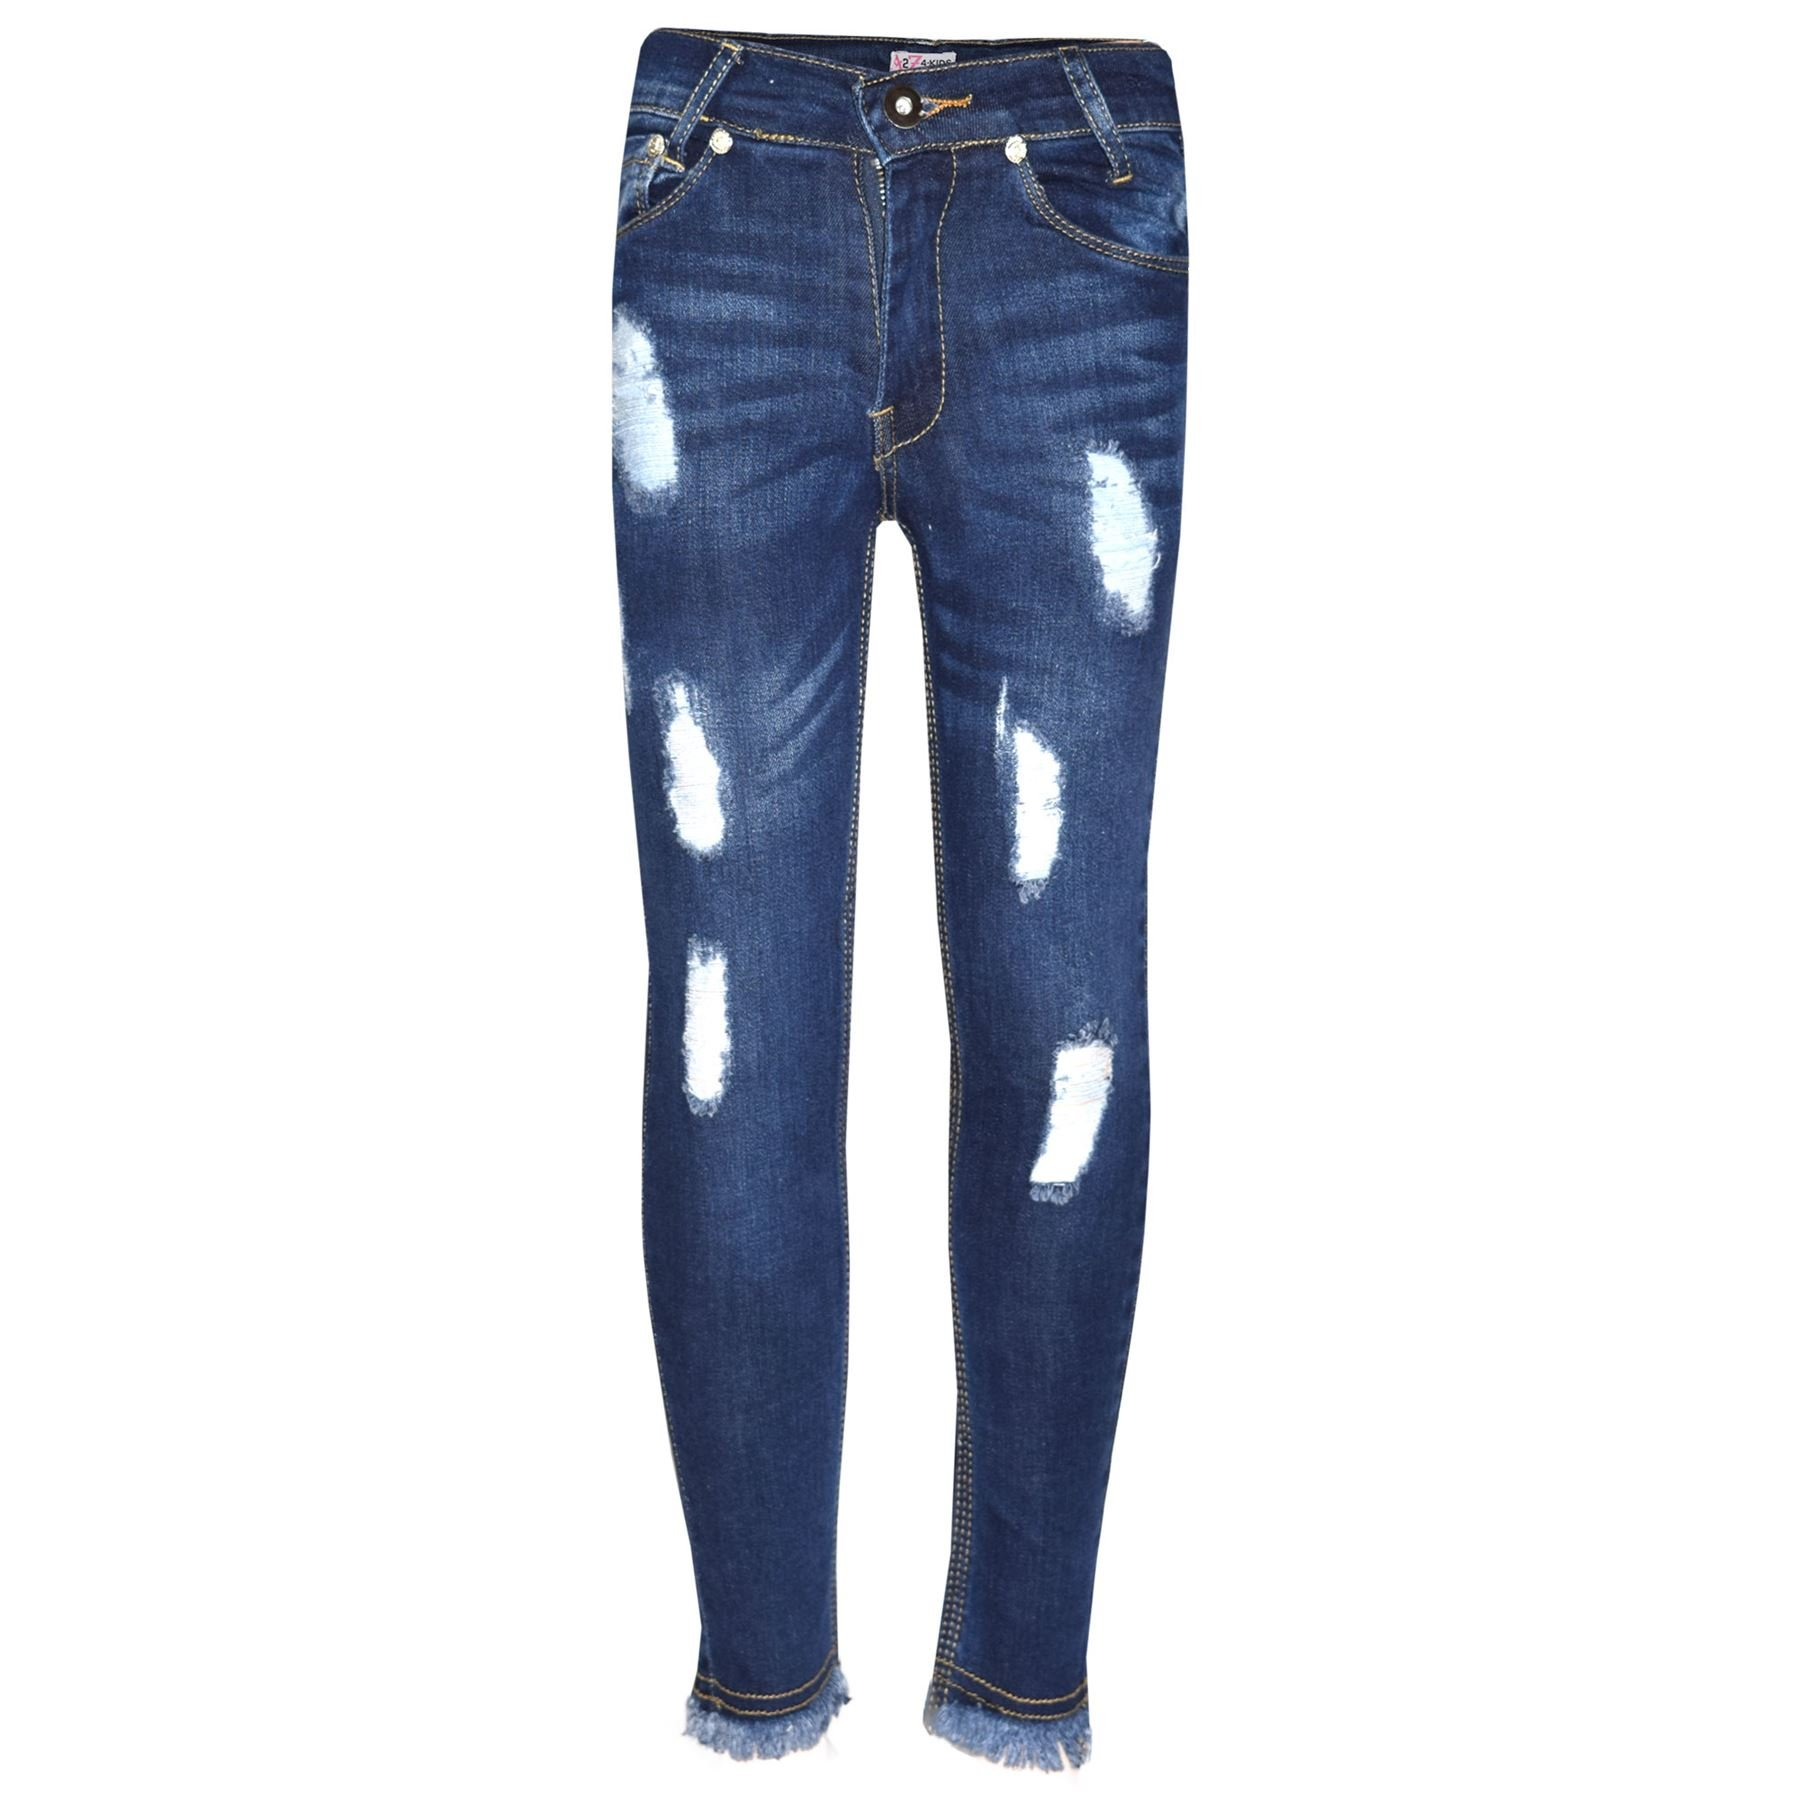 A2Z 4 Kids® Girls Skinny Jeans Kids Stretchy Denim Ripped Rough Pants Trousers Jeggings 5-13